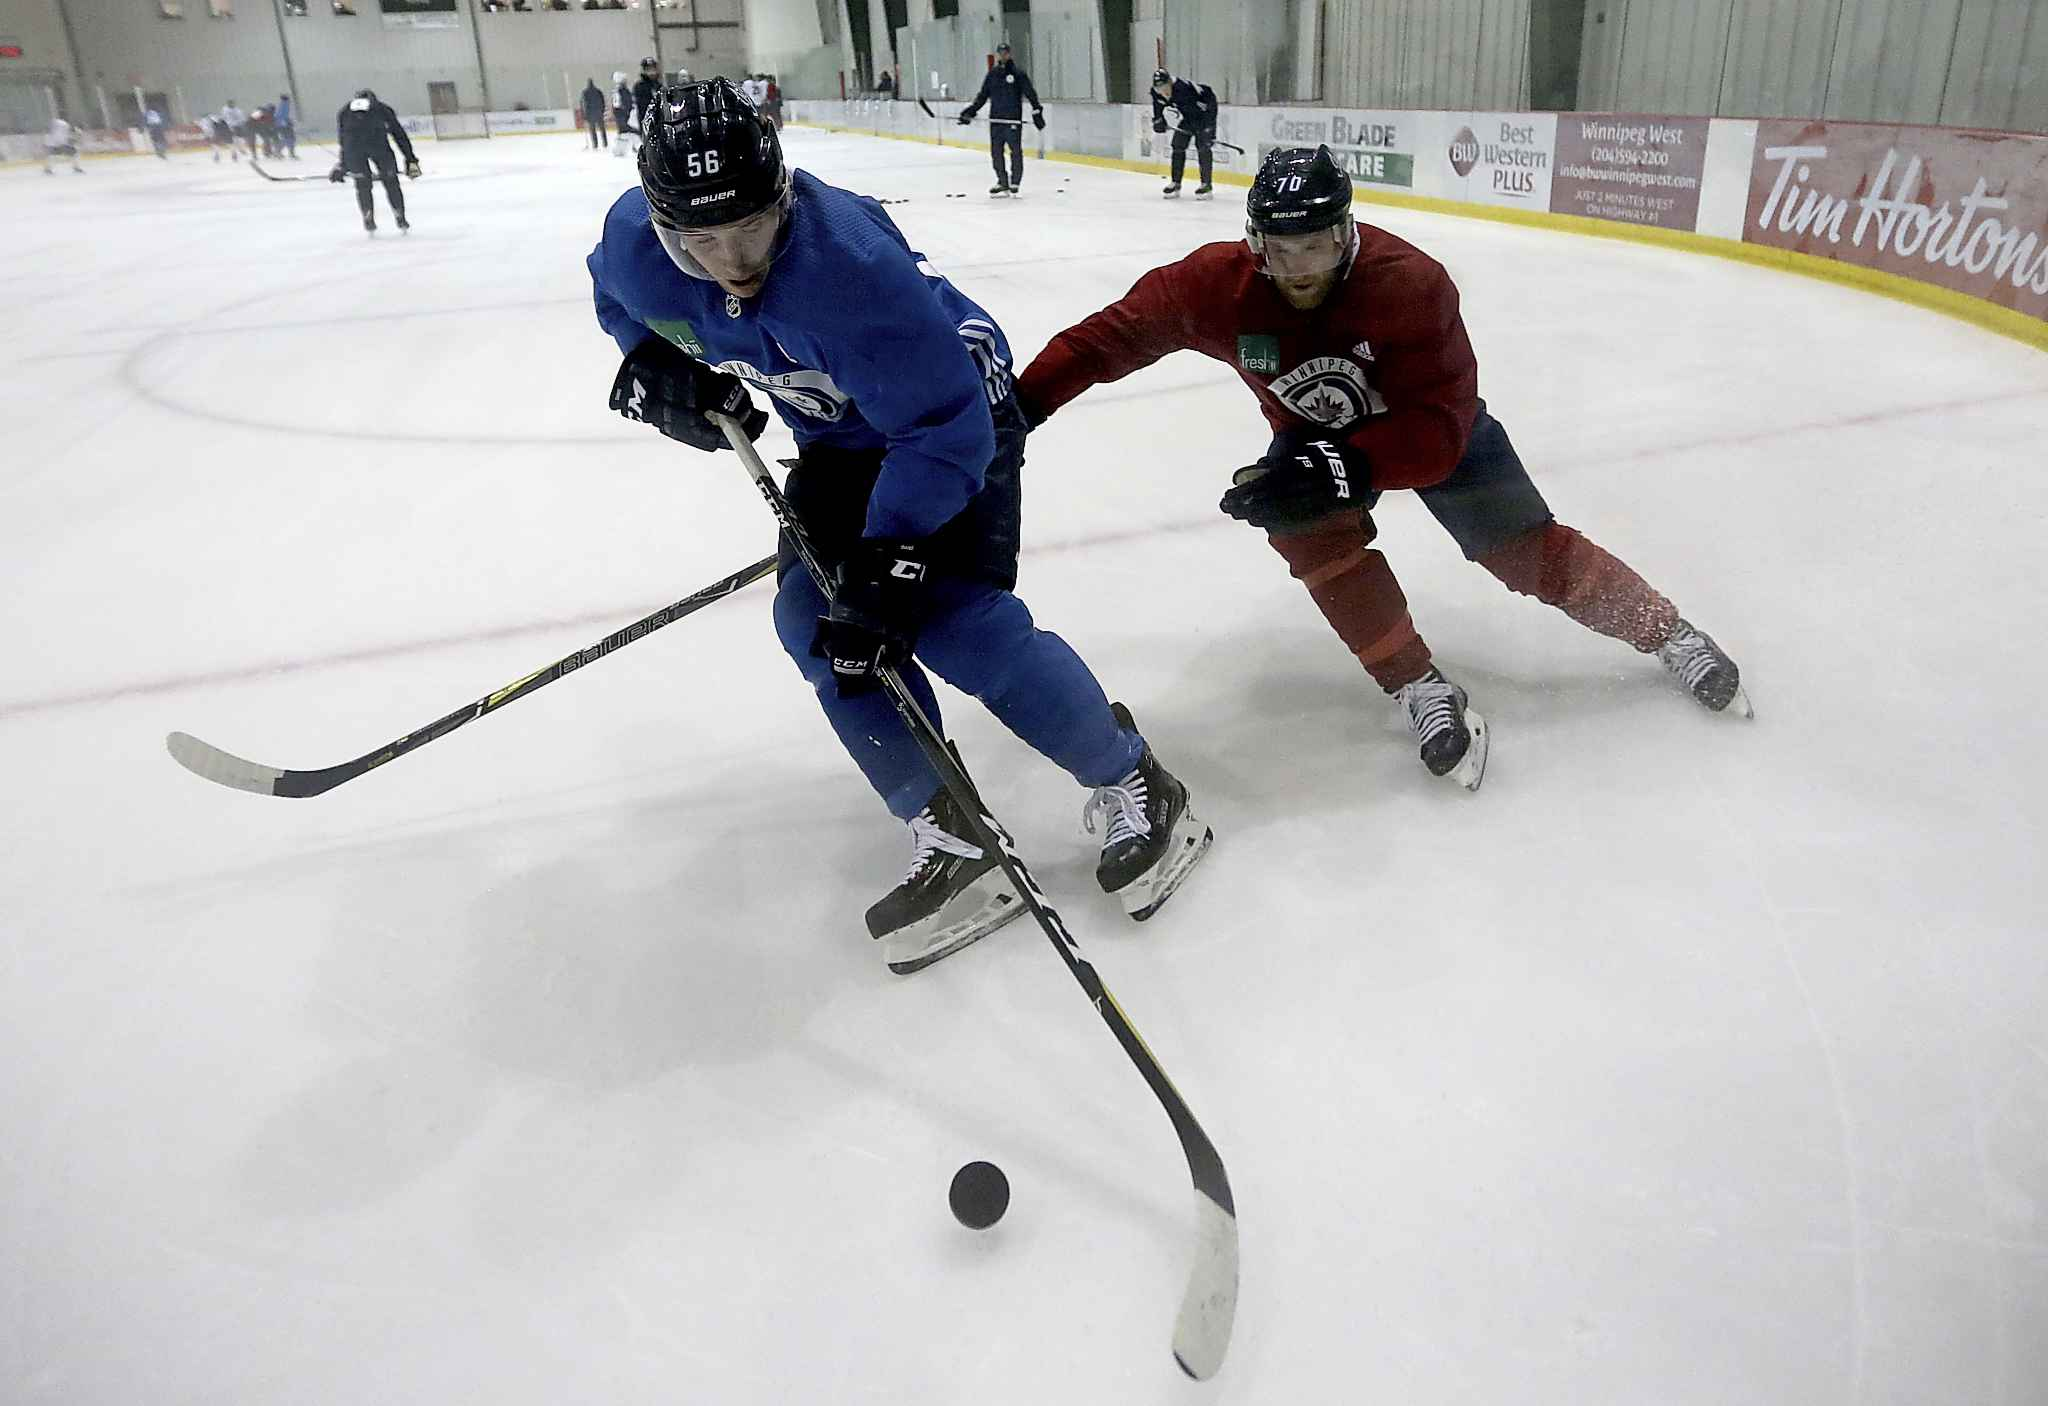 TREVOR HAGAN / WINNIPEG FREE PRESS</p><p>Winnipeg Jets' Marko Dano (56) and Joe Morrow (70) run through a drill Saturday morning at Bell MTS Iceplex.